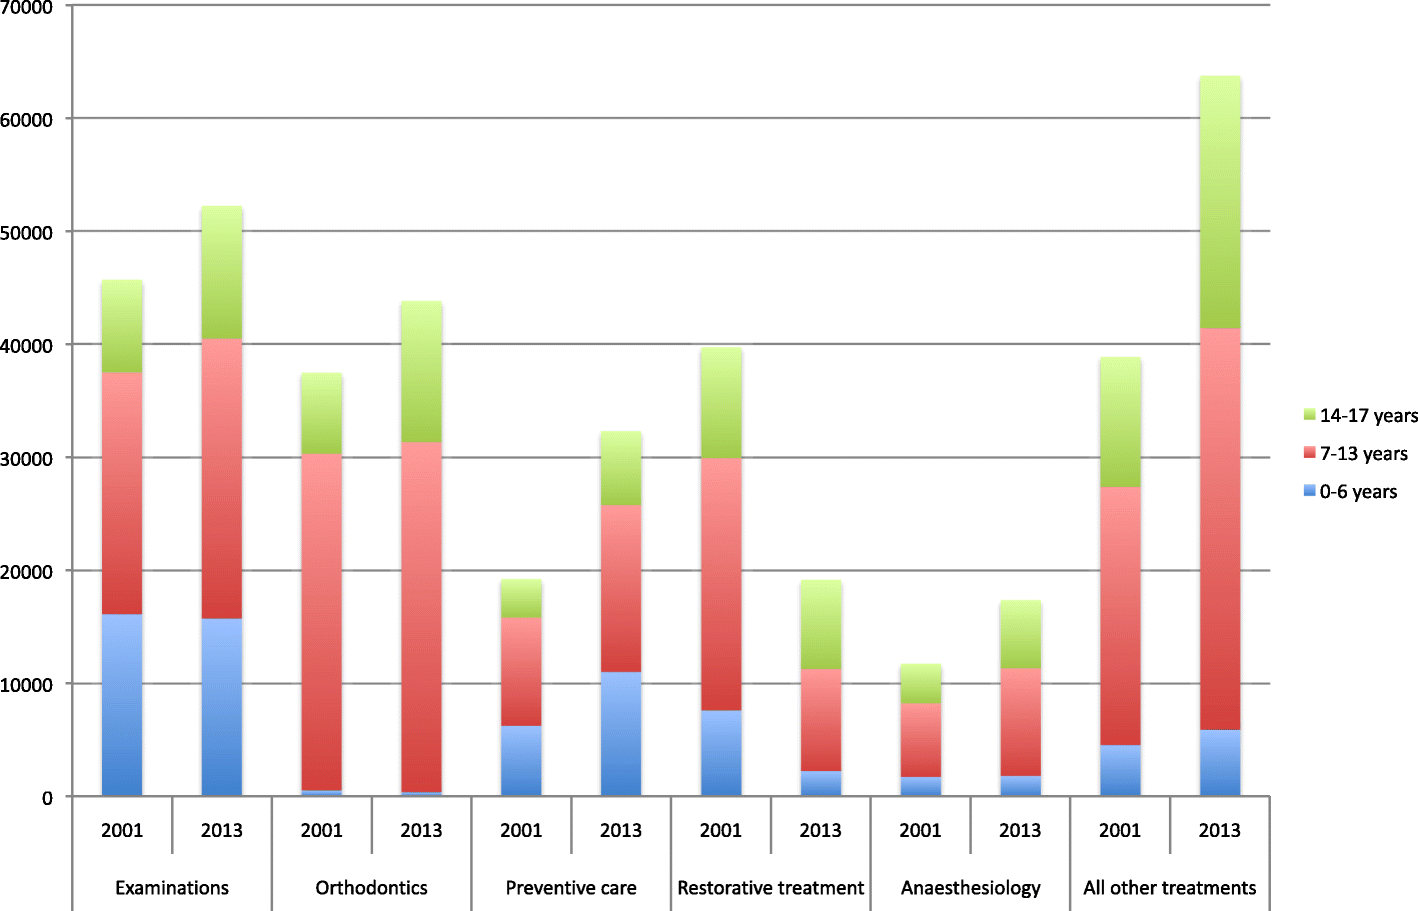 Children and adolescents´ dental treatment in 2001–2013 in the